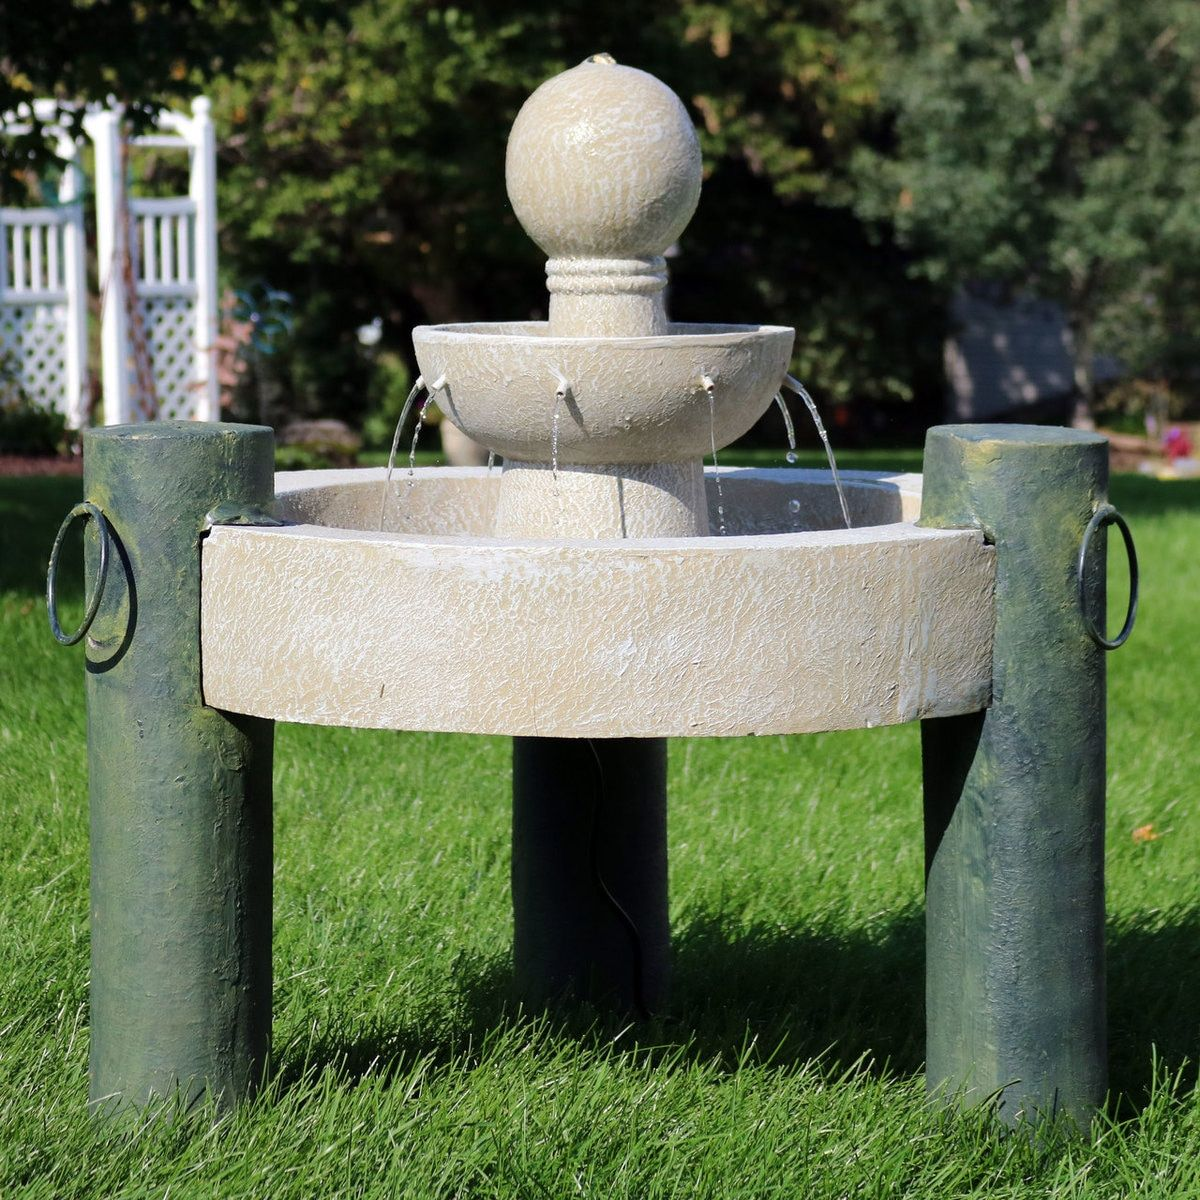 Sunnydaze 2 Tier Raised Cathedral Basin Outdoor Water Fountain 37 Inch Tall Fountains Outdoor Water Fountains Outdoor Large Outdoor Fountains